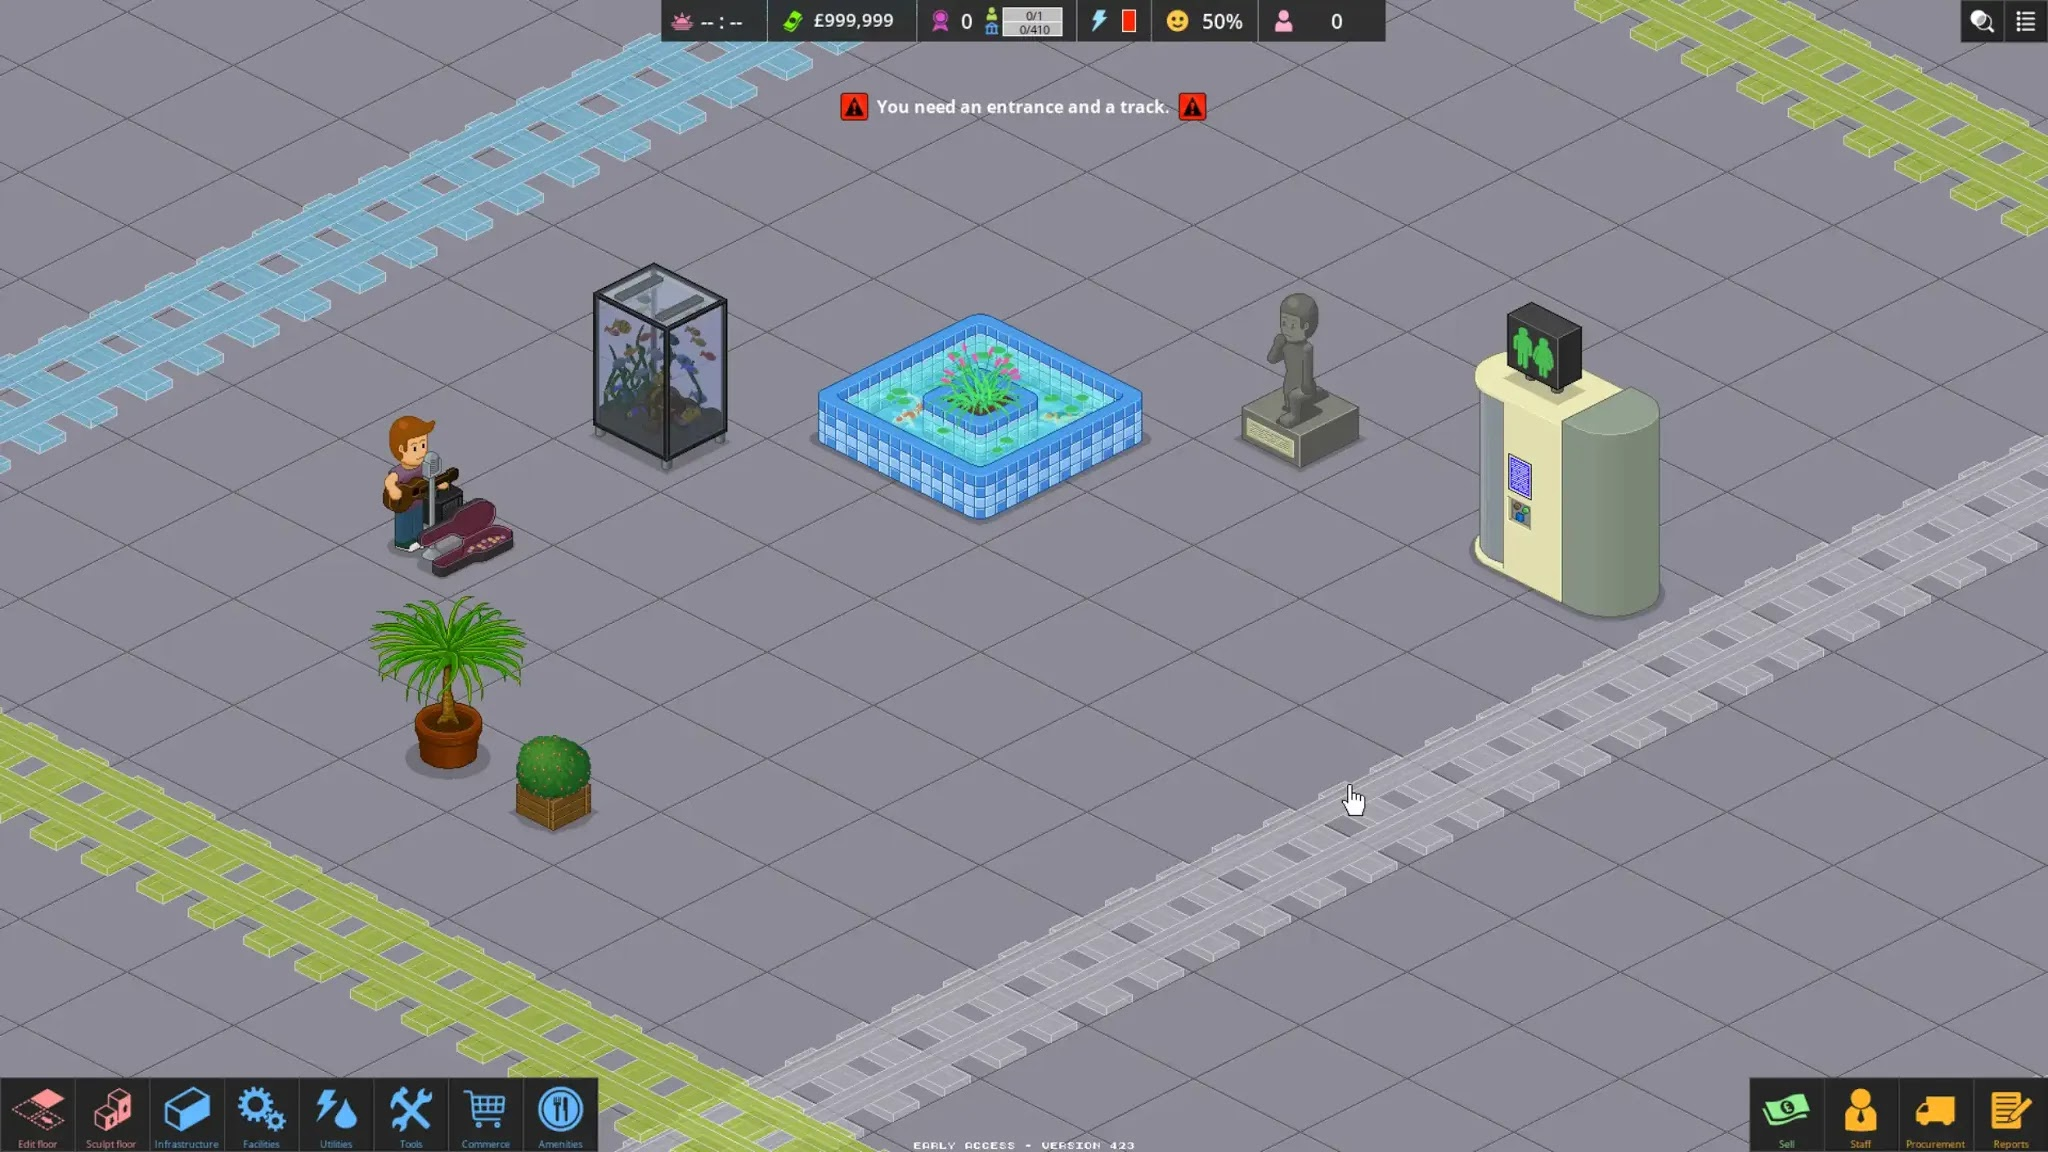 Overcrowd Toilets and Prestige Items